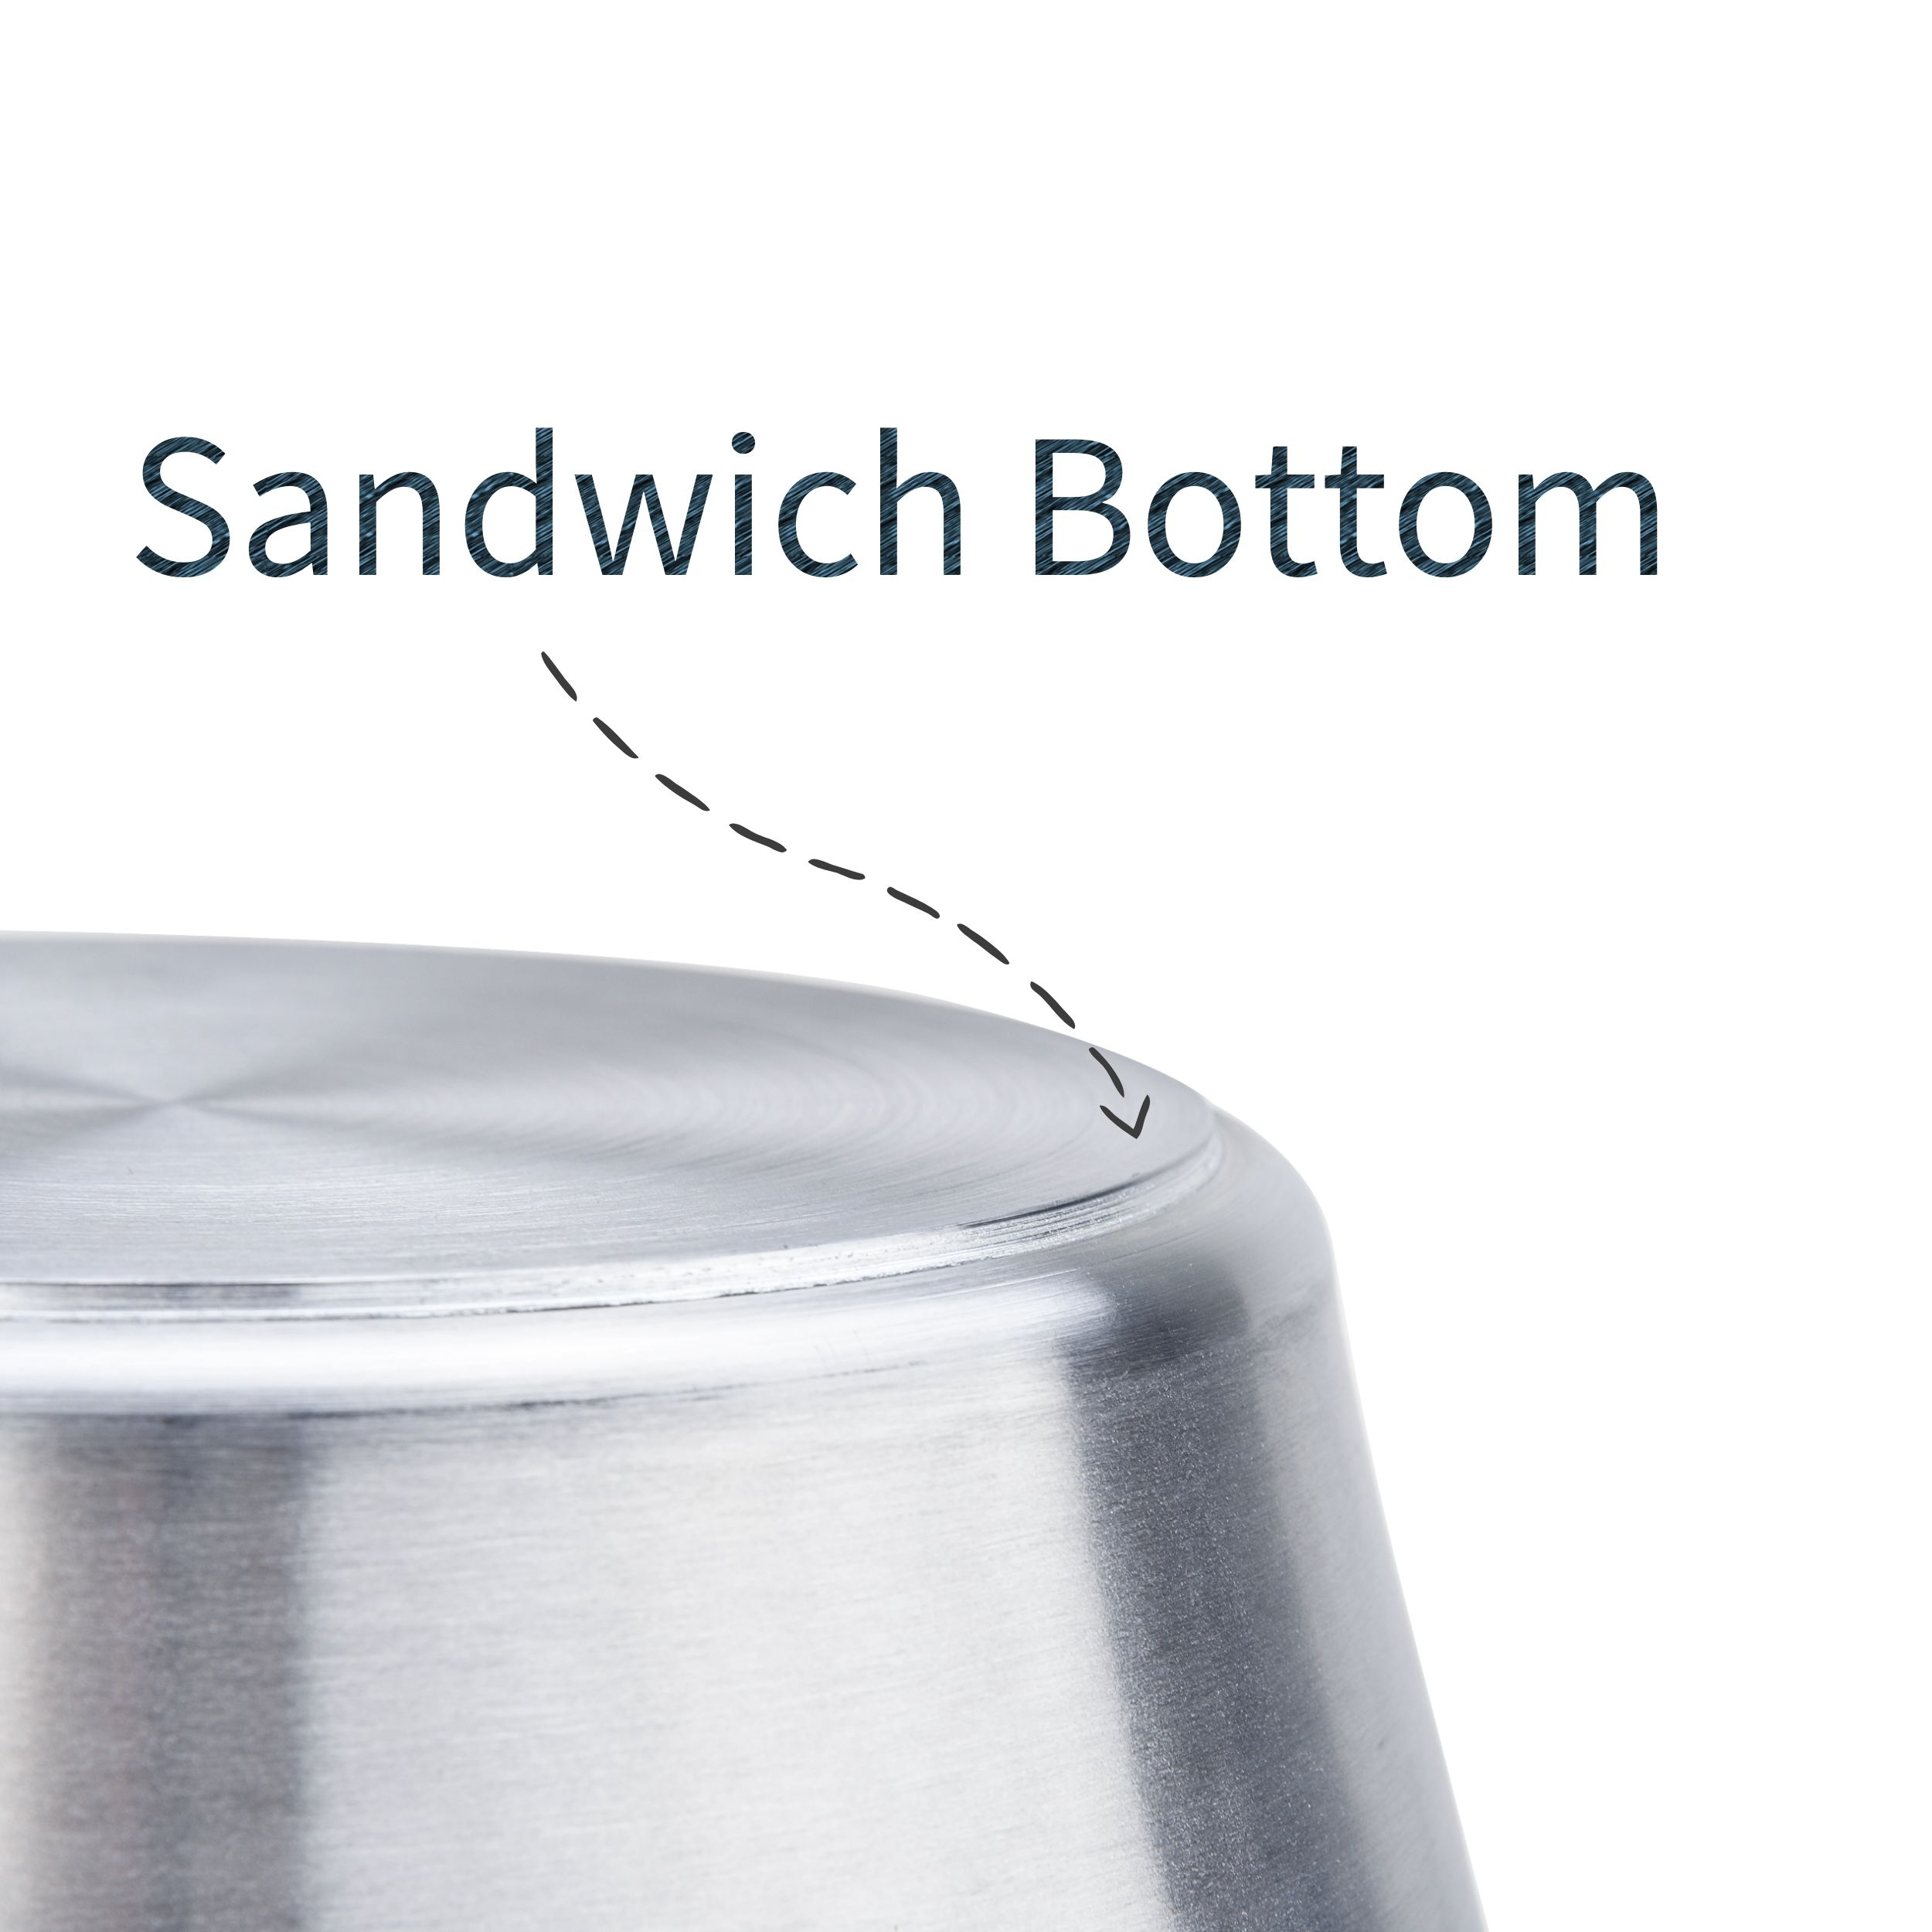 Sandwich Bottom